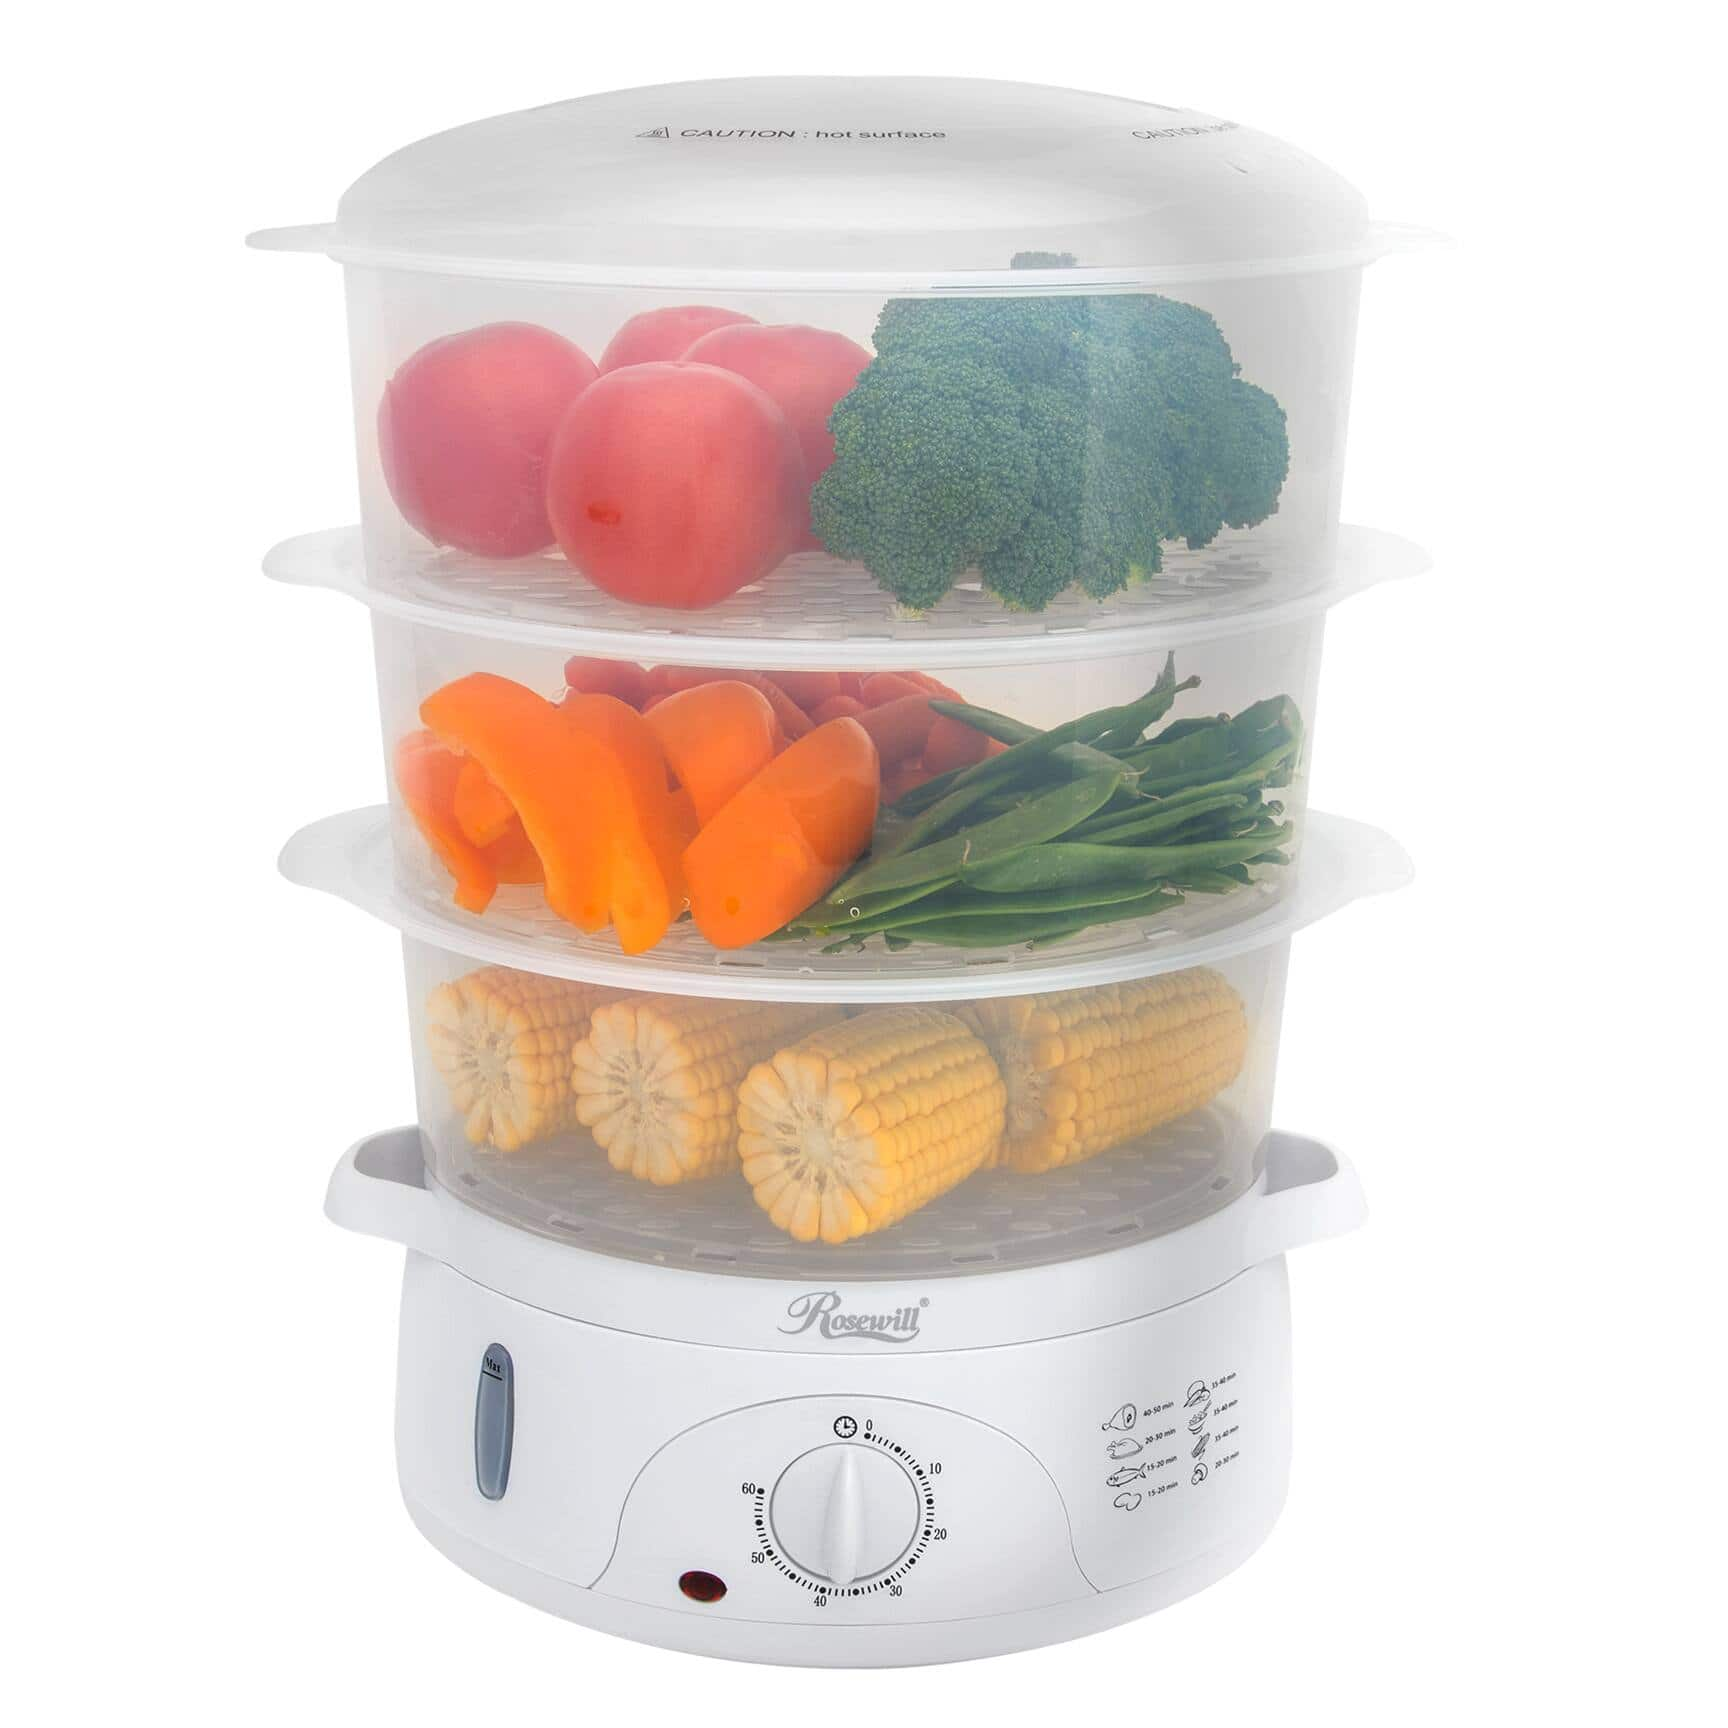 Rosewill 3-Tray Electric Food Steamer for $29.99 + Free Shipping